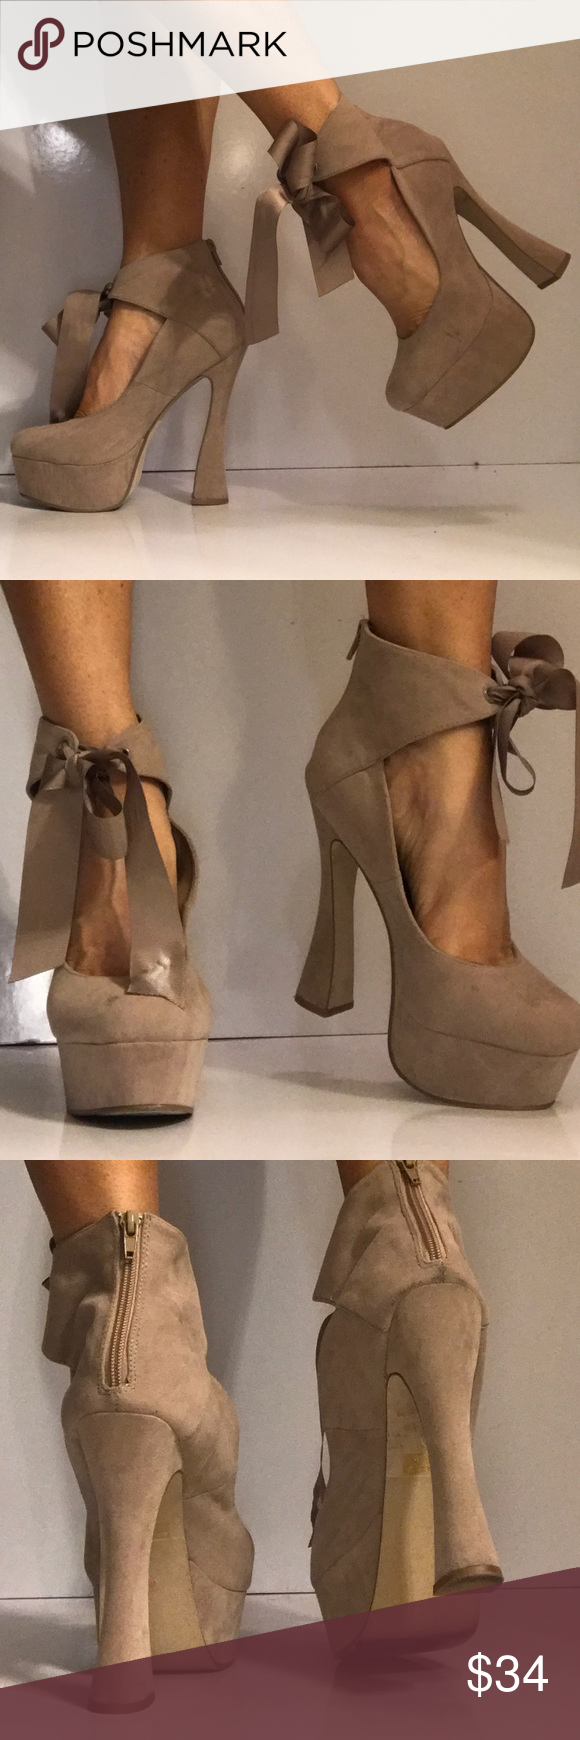 59ca24d14138 Size 9 baby doll platform - UNIQUE I m having a hard time parting with  these. Foot surgery on the way! You can have them now! So fun! styluxe Shoes  ...